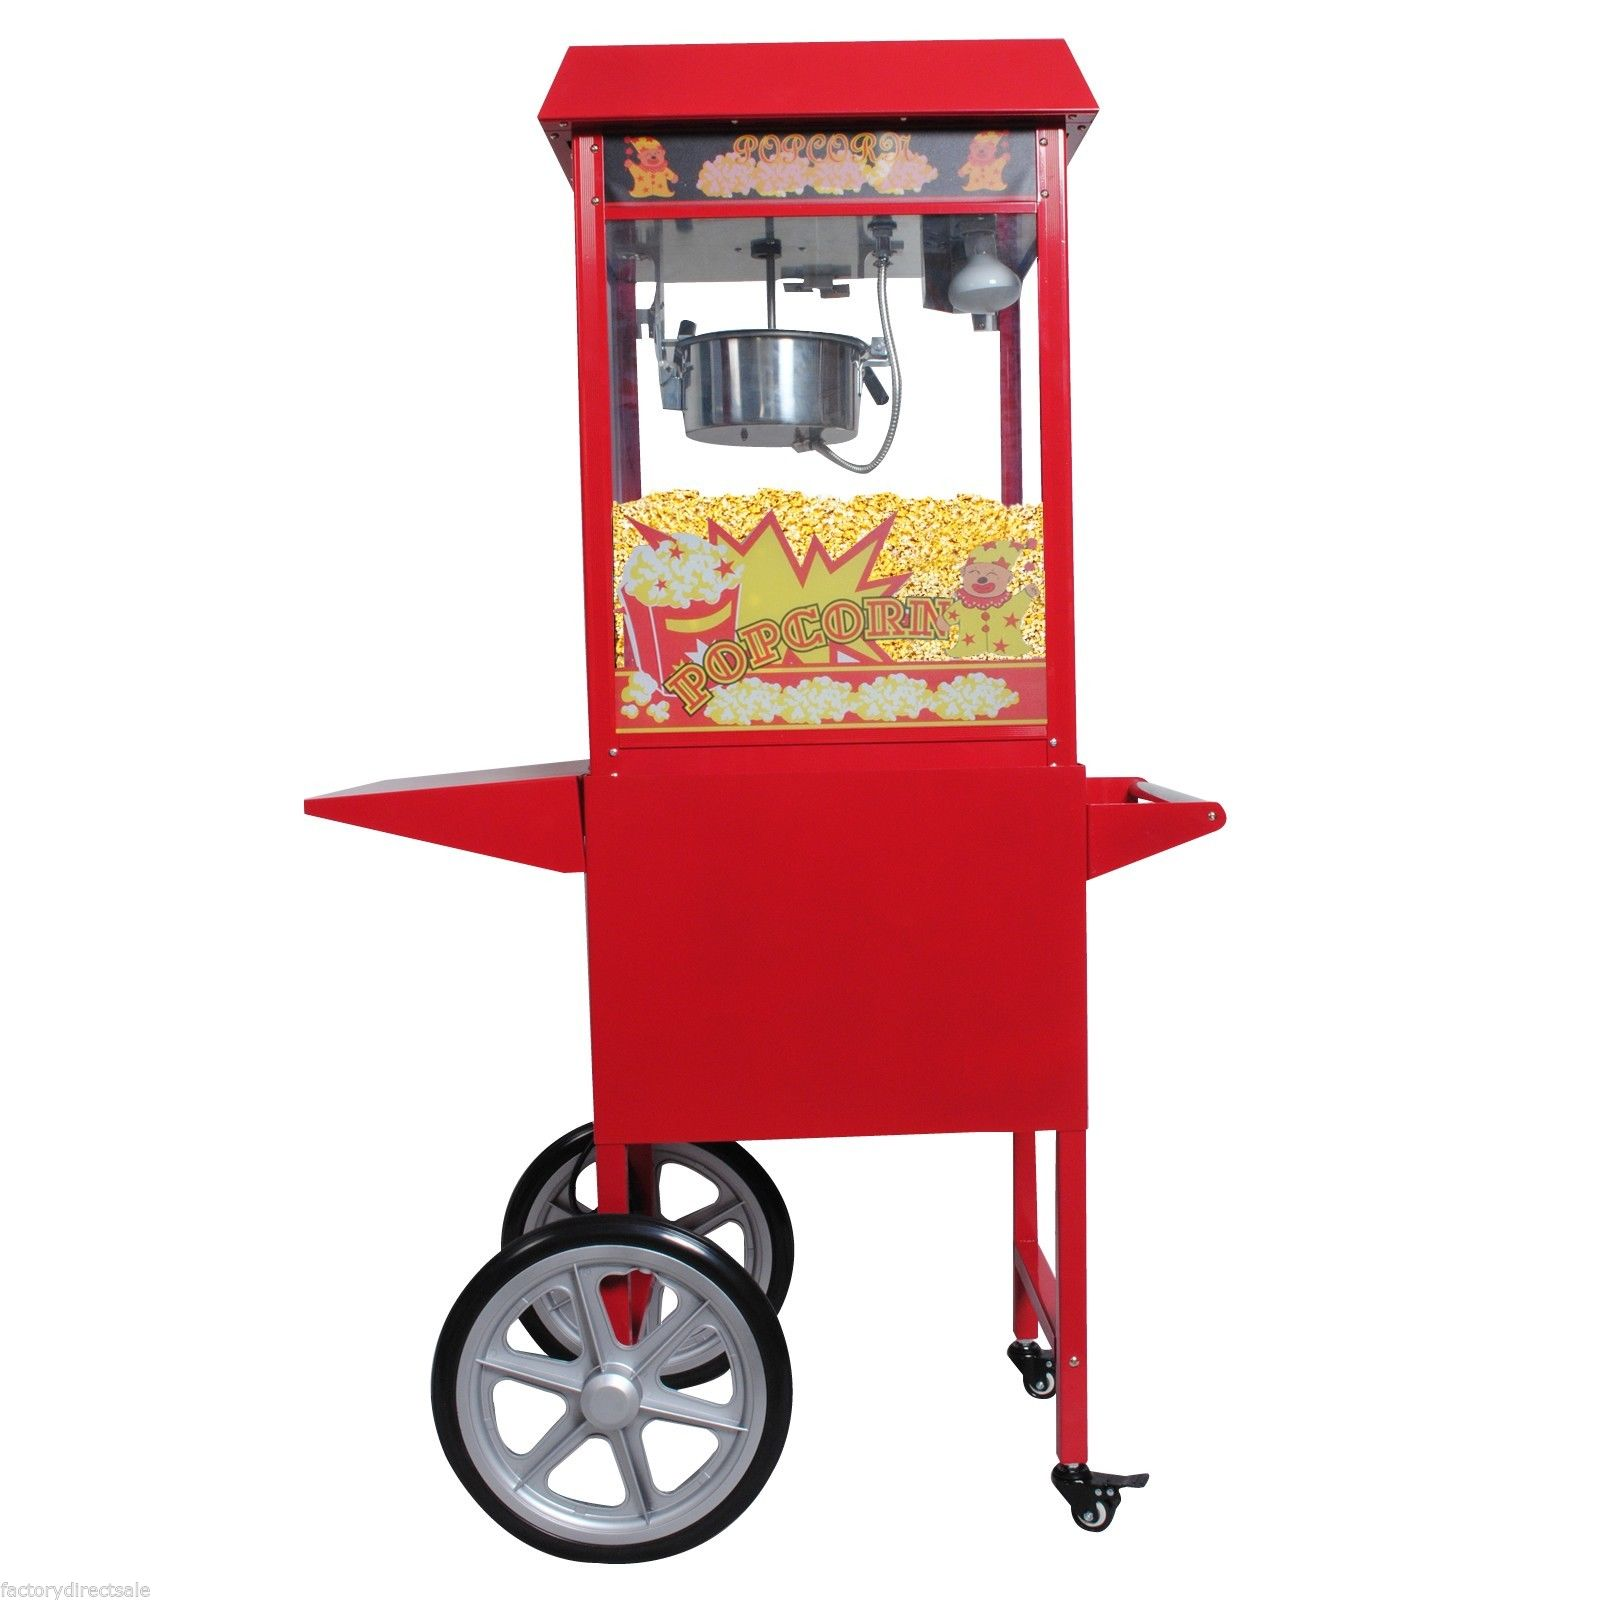 GHP 8-Oz Red Stainless Steel Antique Style Popcorn Popper Machine Stand with Cart